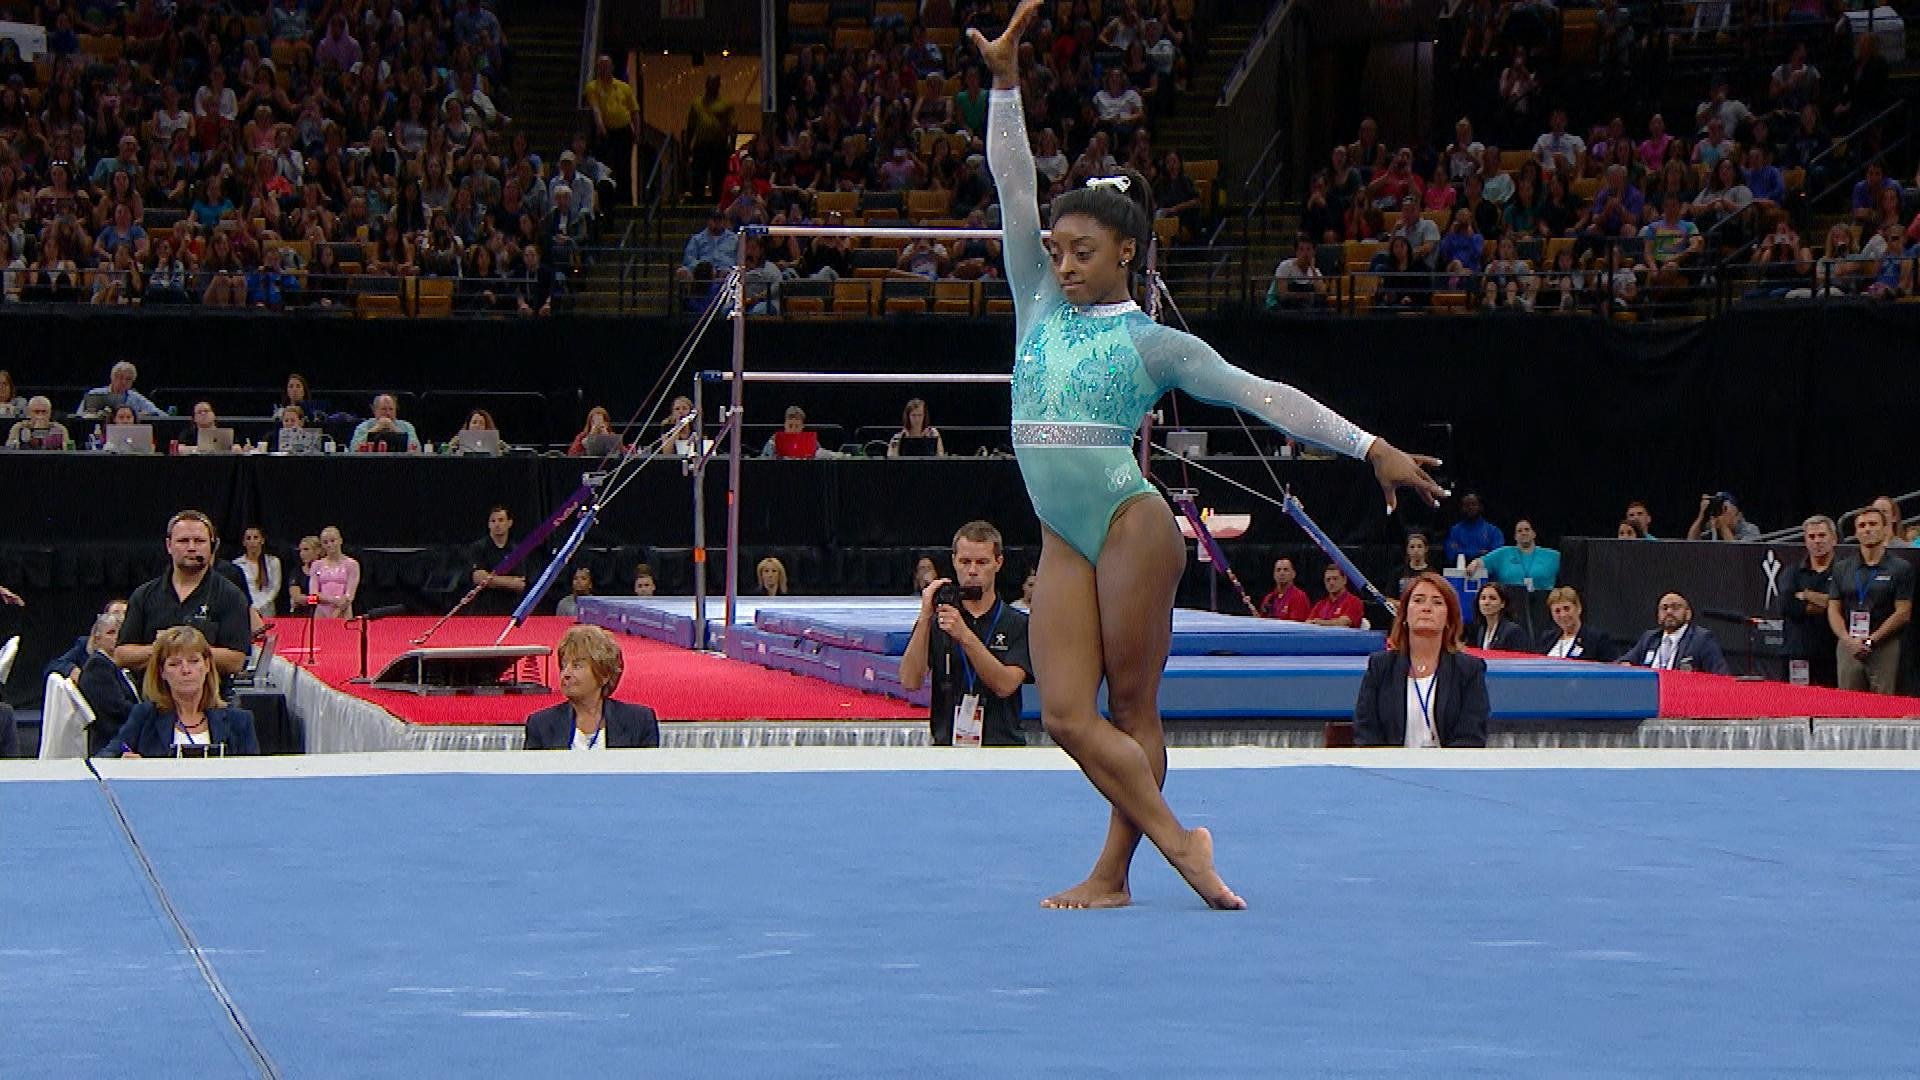 Simone Biles floor routine on Day 2 of